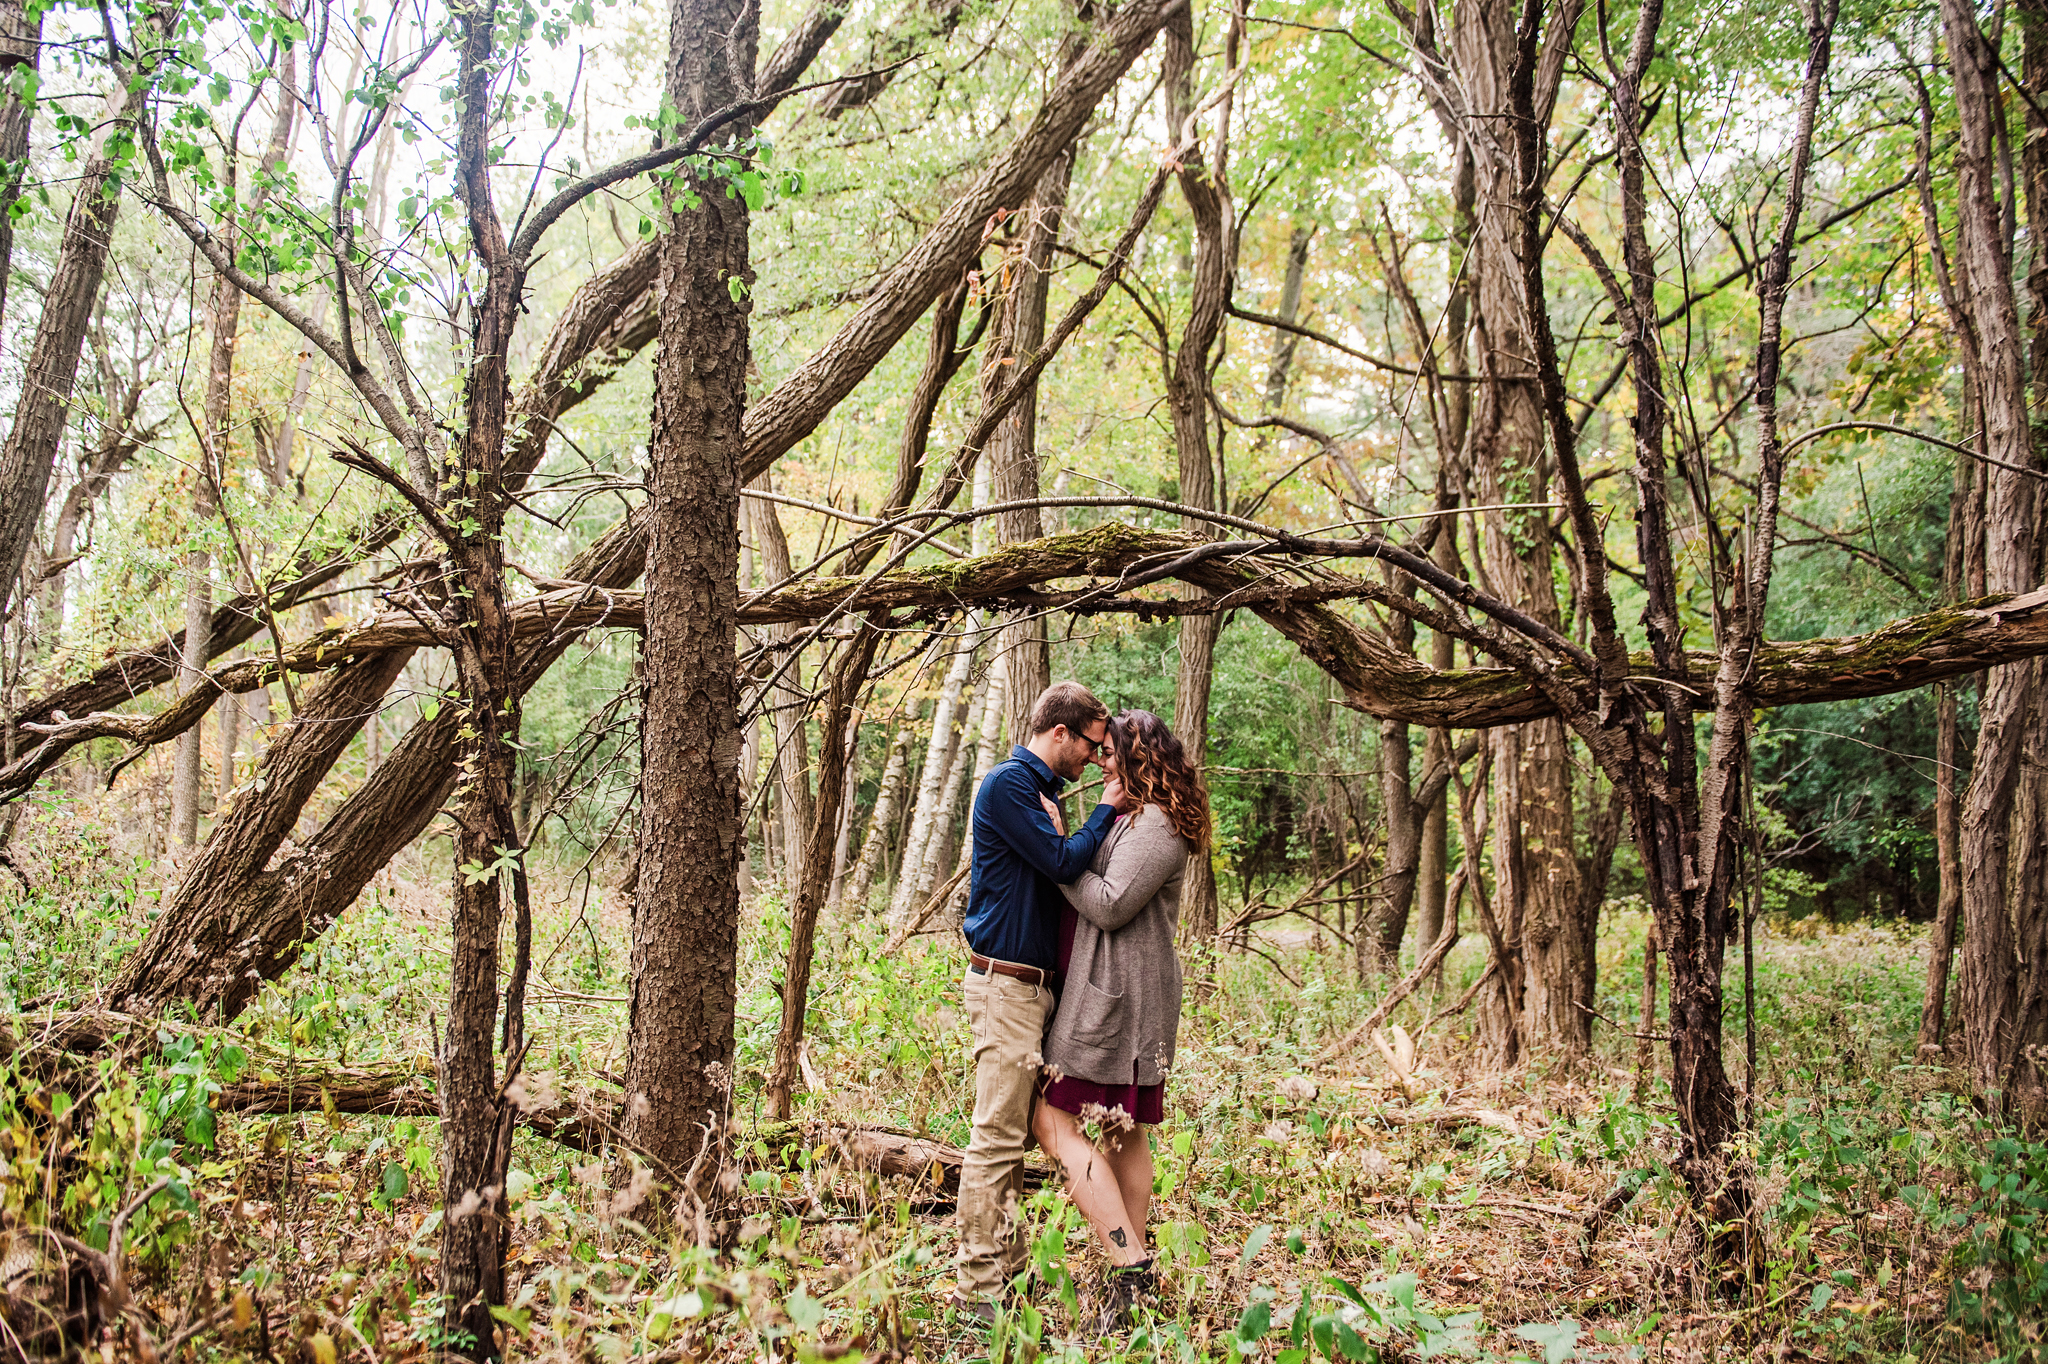 Mendon_Ponds_Park_Rochester_Engagement_Session_JILL_STUDIO_Rochester_NY_Photographer_DSC_5318.jpg